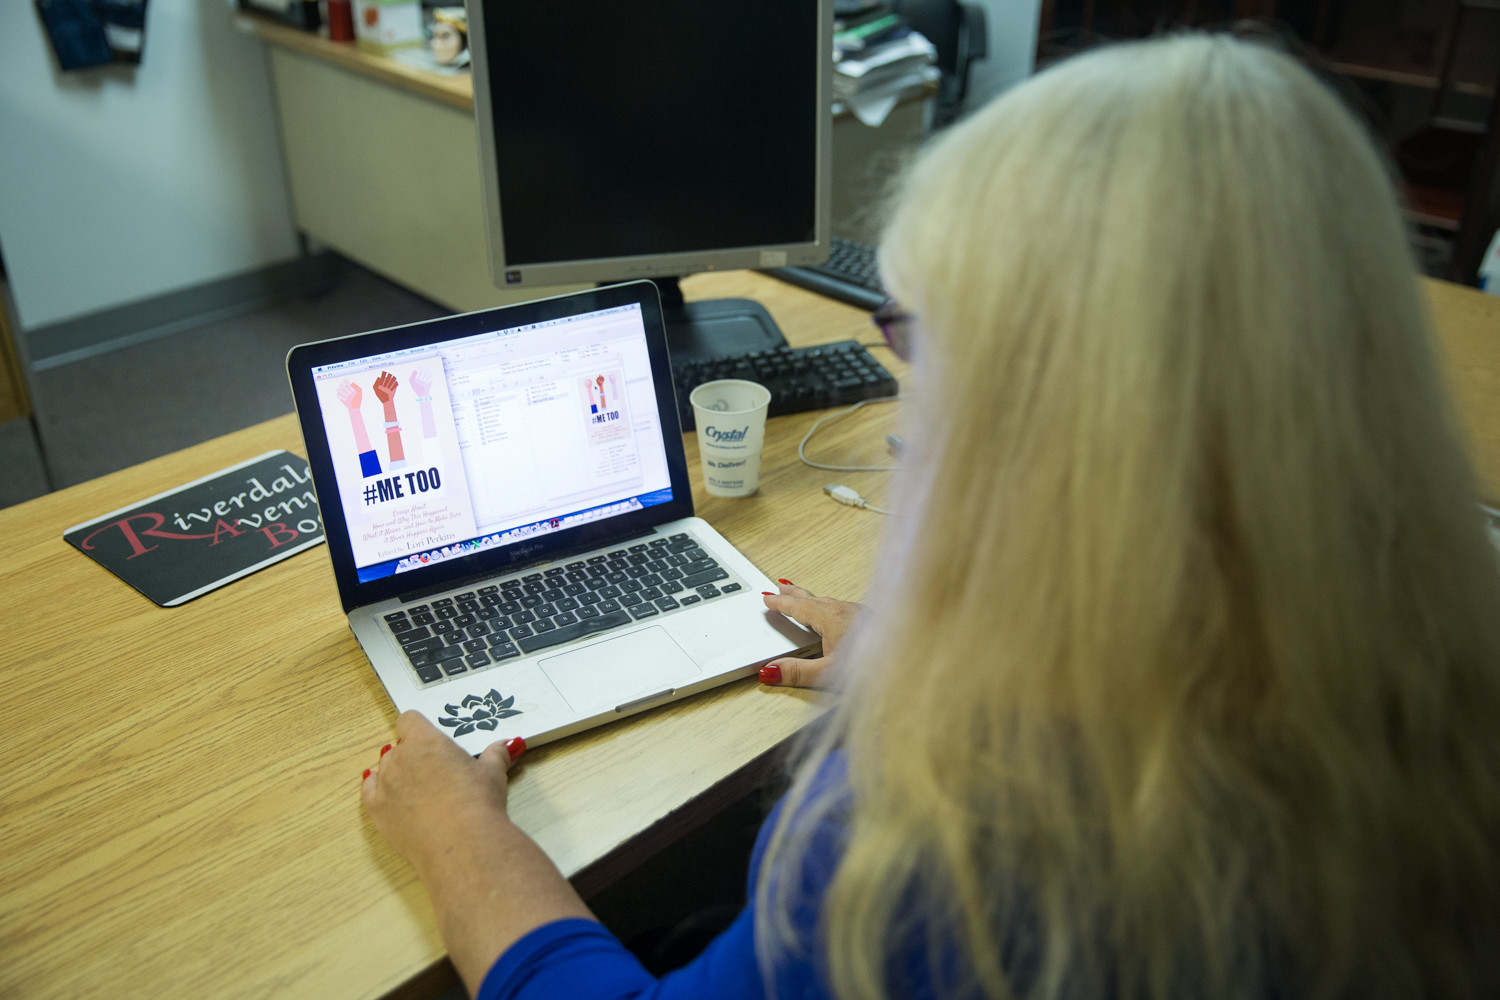 Lori Perkins, the publisher of Riverdale Avenue Books, checks the cover of her e-book of collected essays called 'Me Too: Essays About How and Why This Happened, What it Means, and How to Make Sure it Never Happens Again.' Perkins had the idea for the book in the aftermath of the Harvey Weinstein sexual harassment controversy.